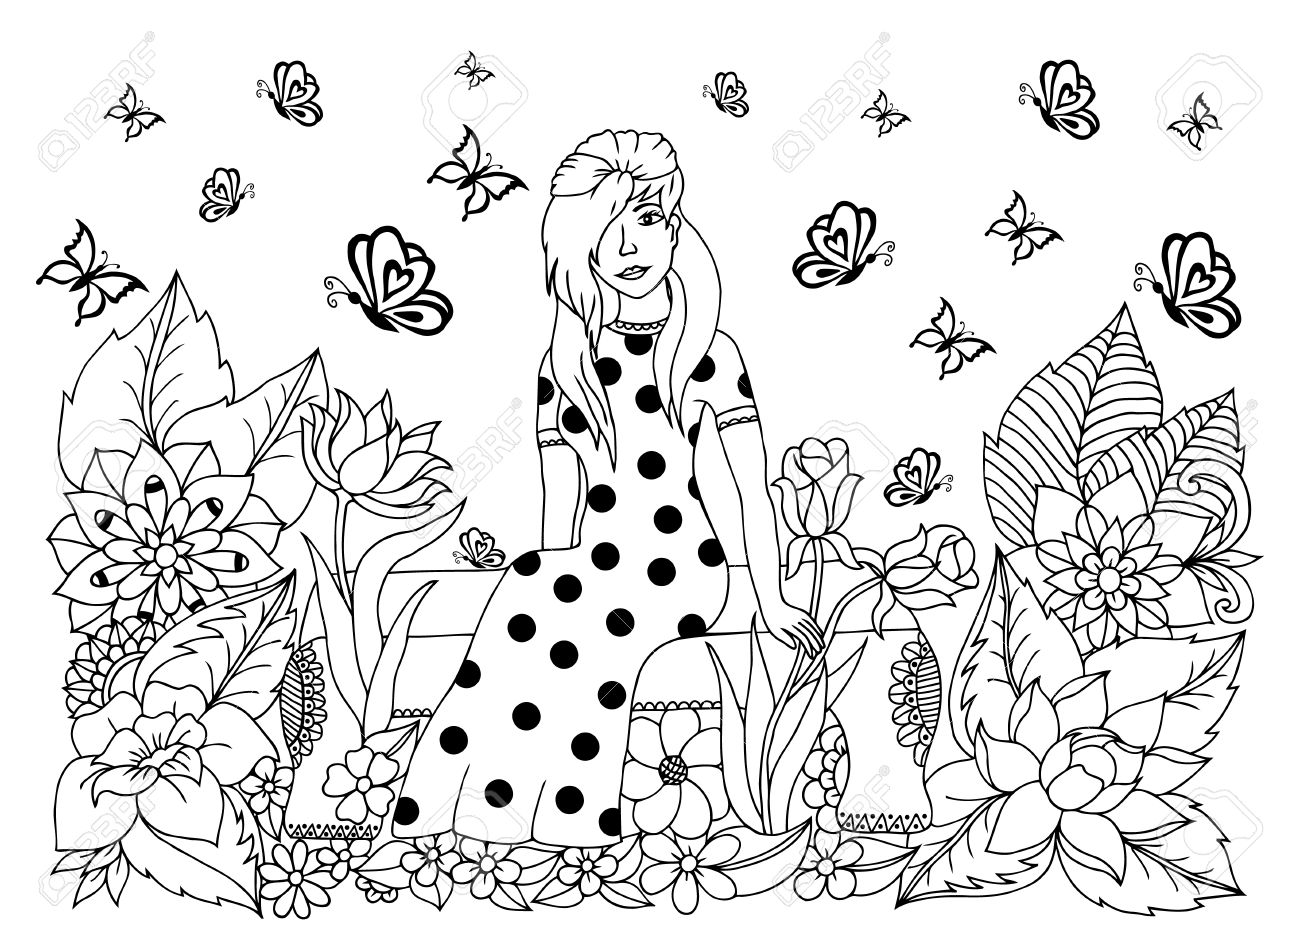 1300x951 Illustration Girl Sitting On A Bench In Flowers. Doodle Drawing